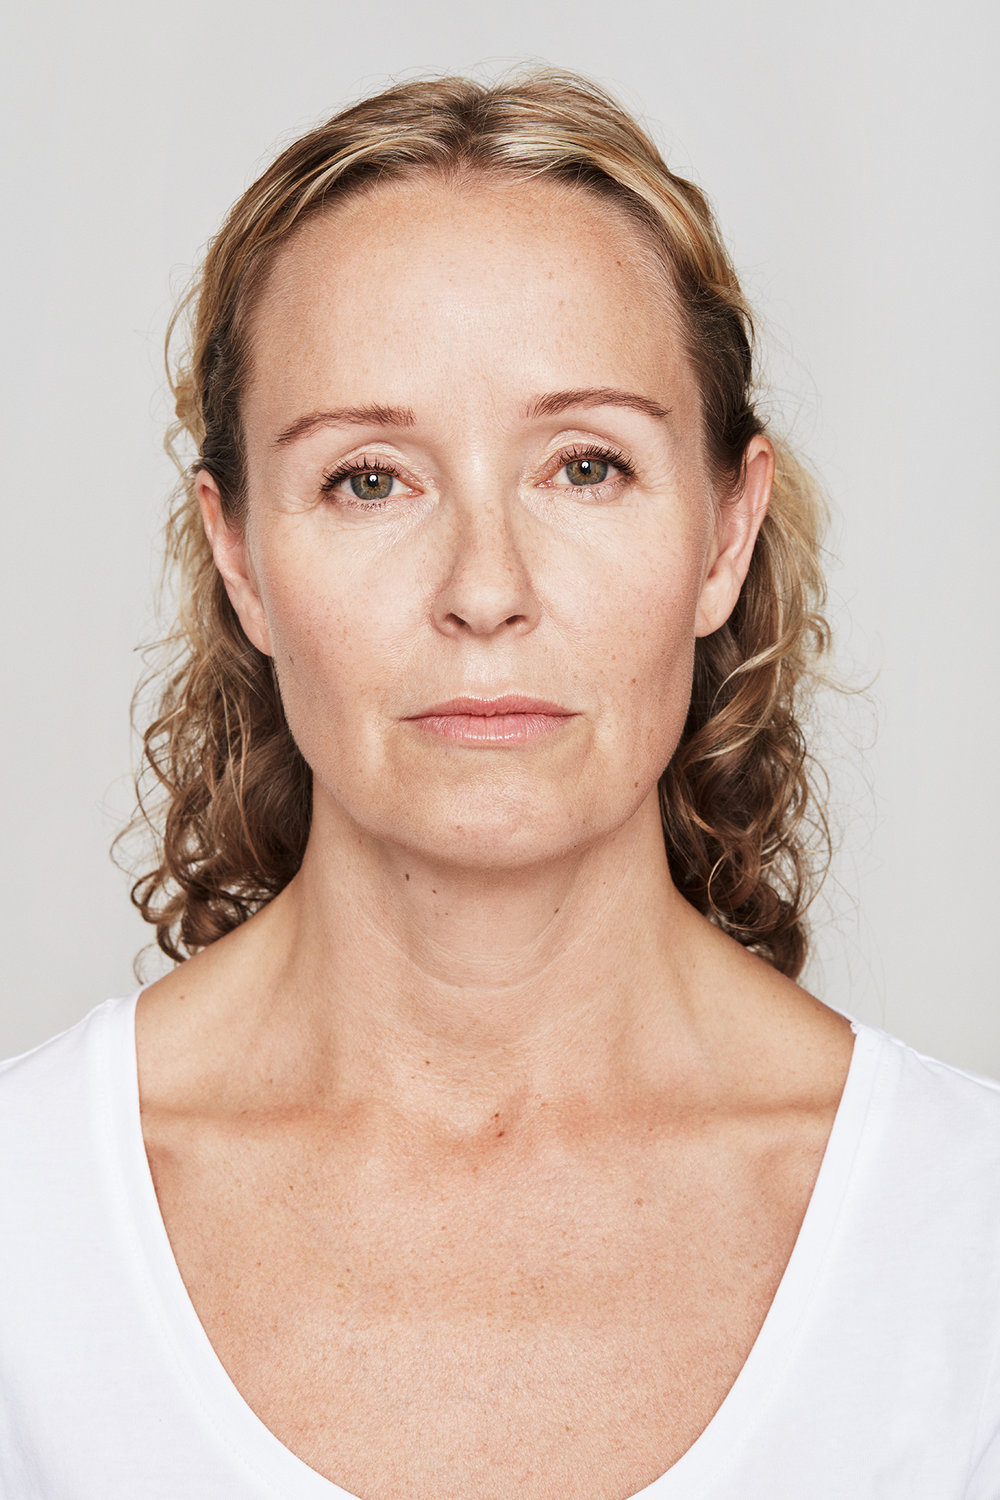 After Dysport and Restylane (Christina, 47)